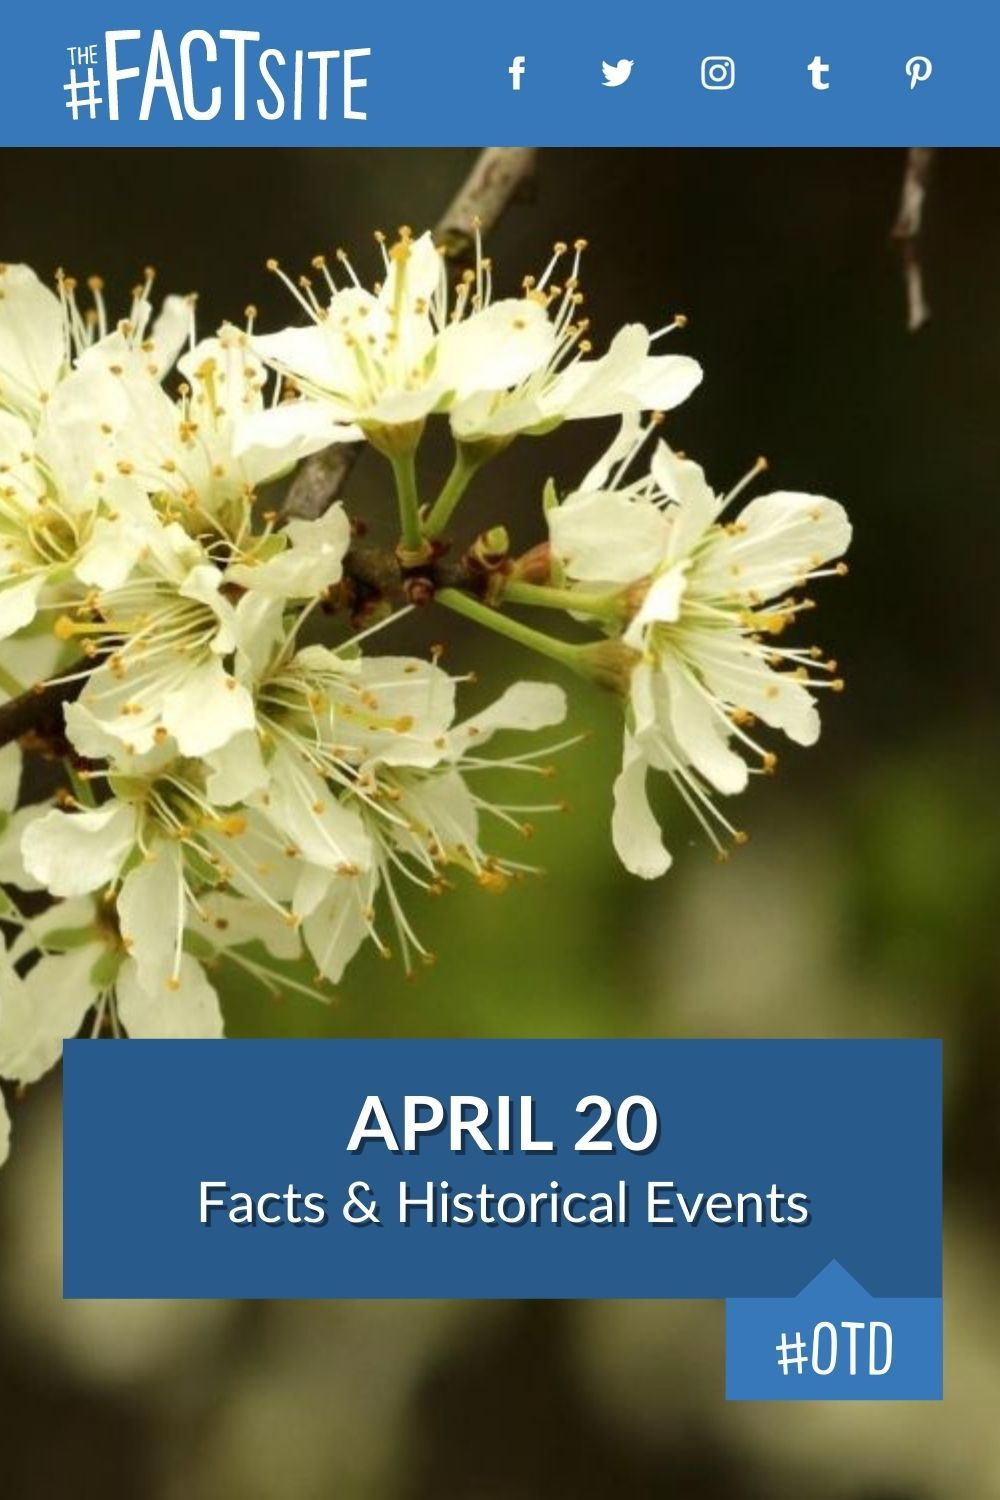 Facts & Historic Events That Happened on April 20